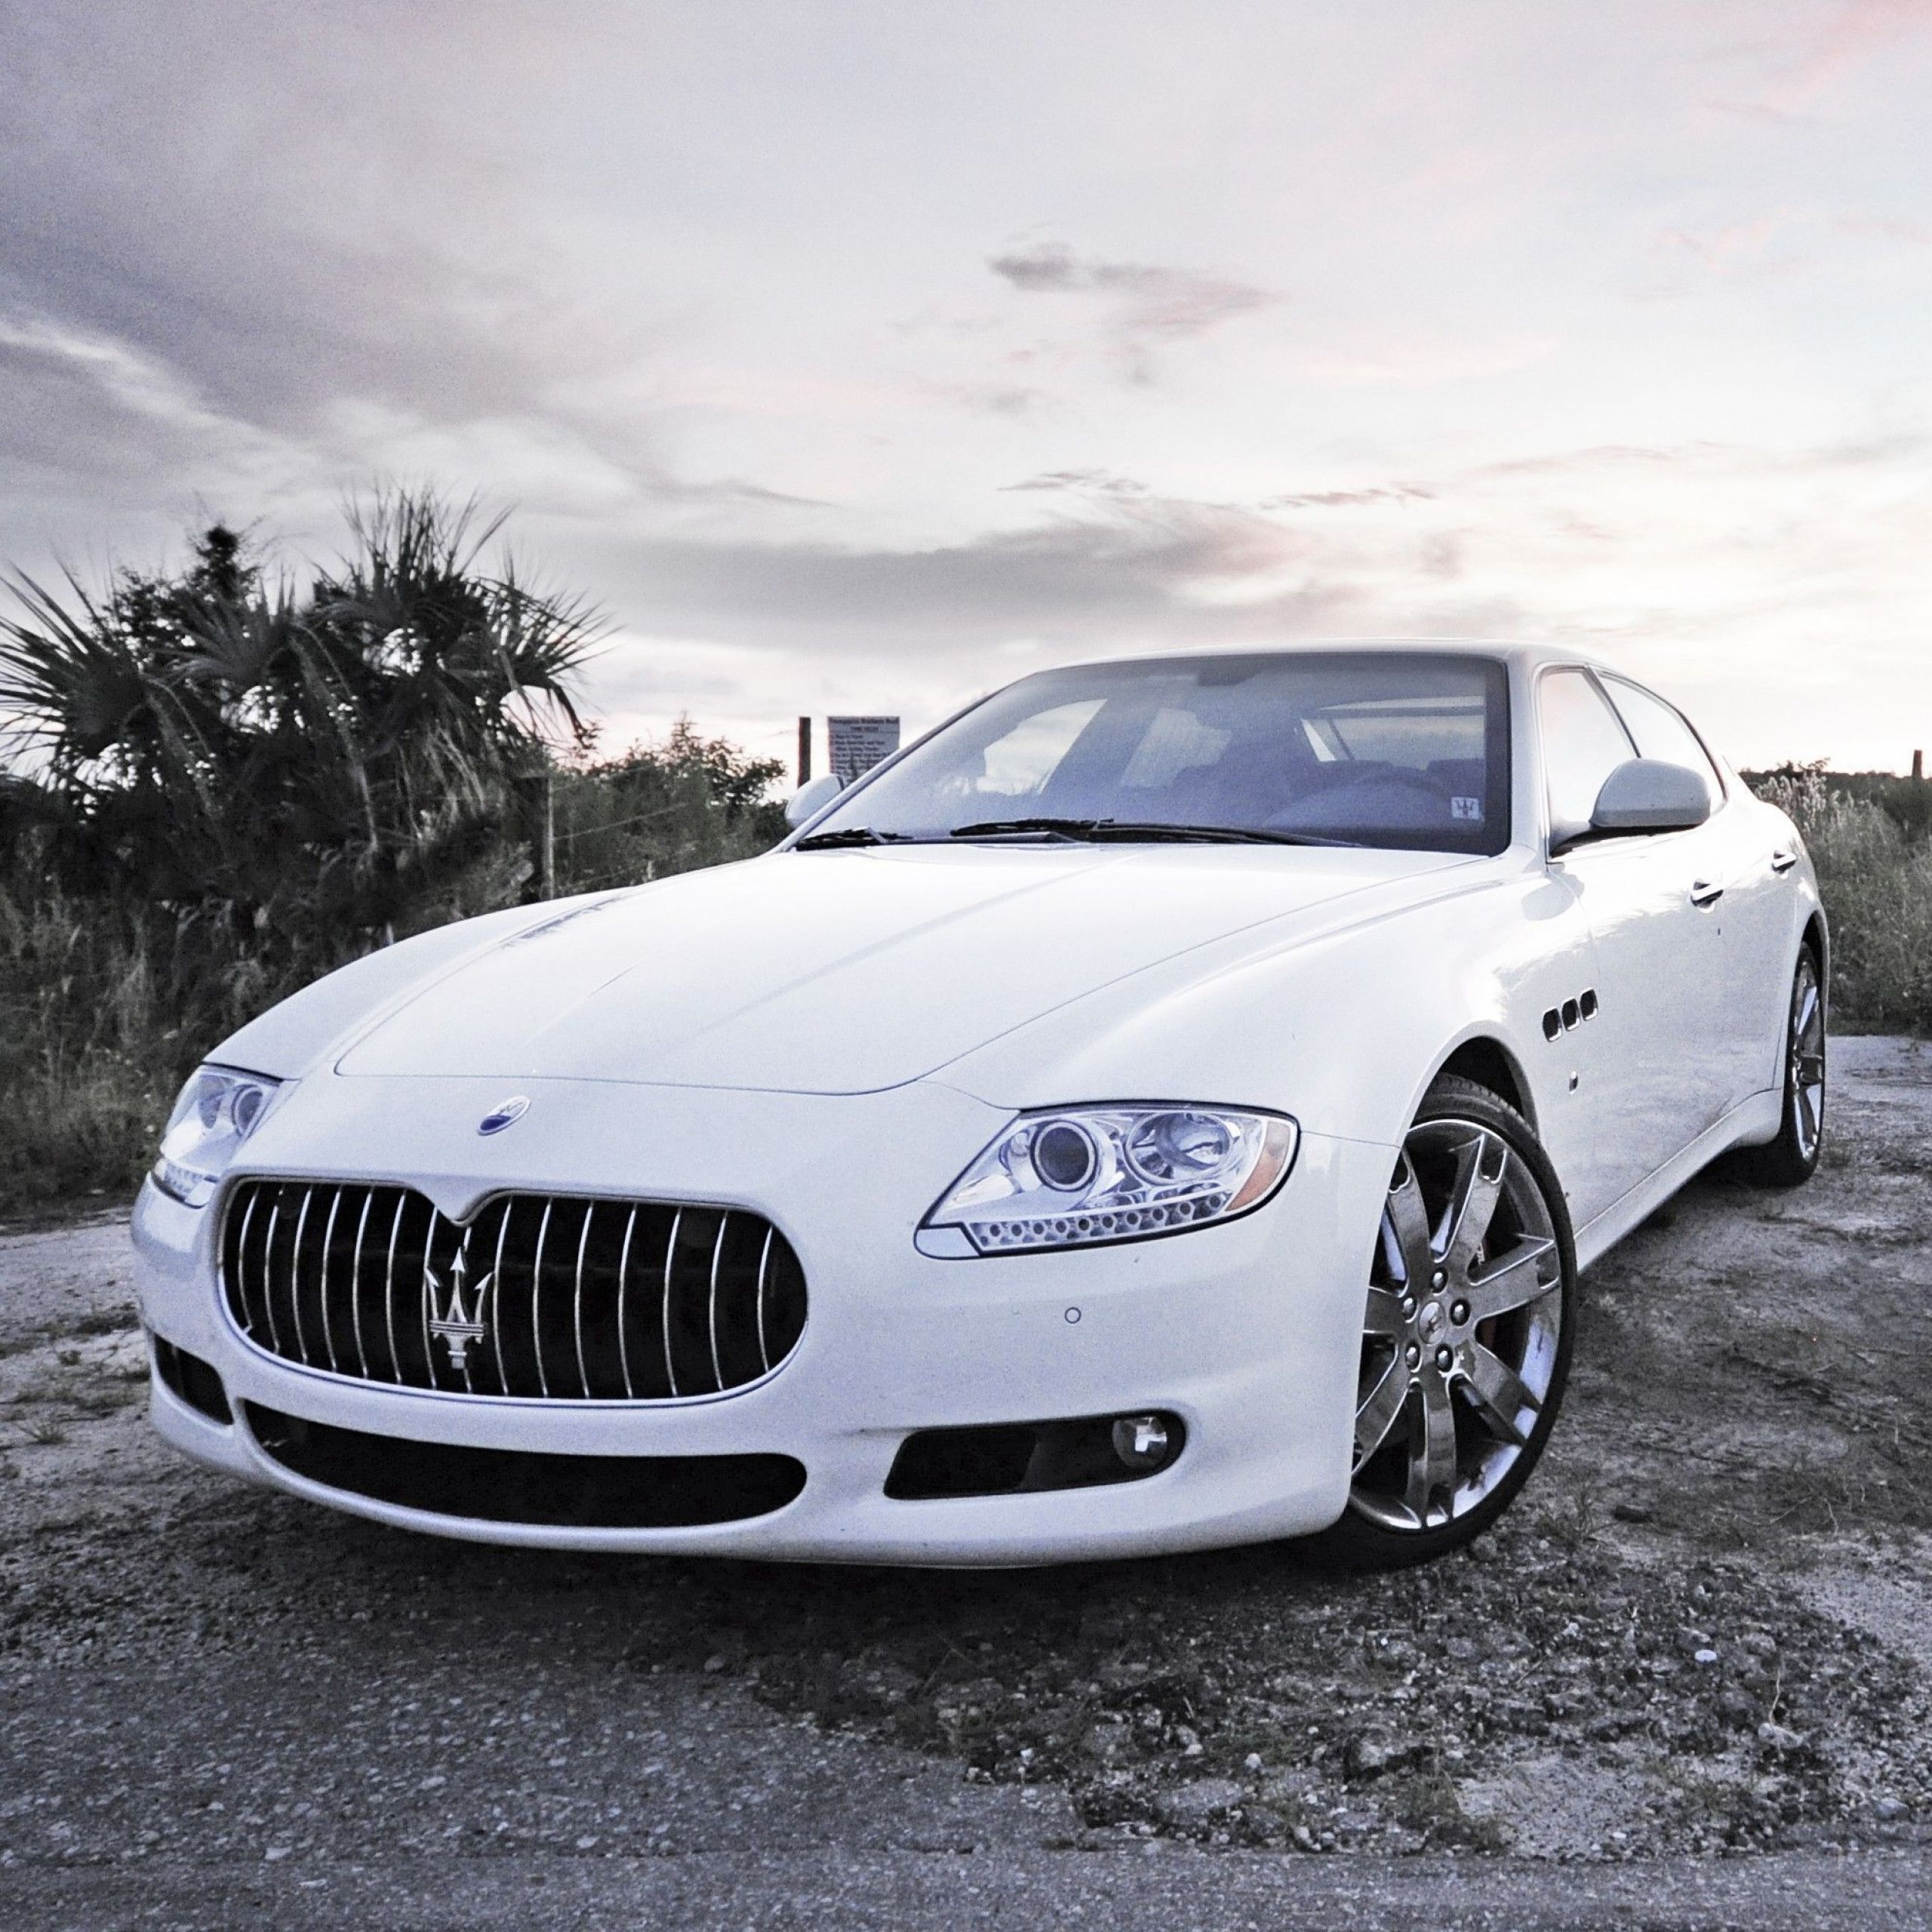 Maserati Granturismo Awesome Maserati Quattroporte Feels Large Lots Of Room Really